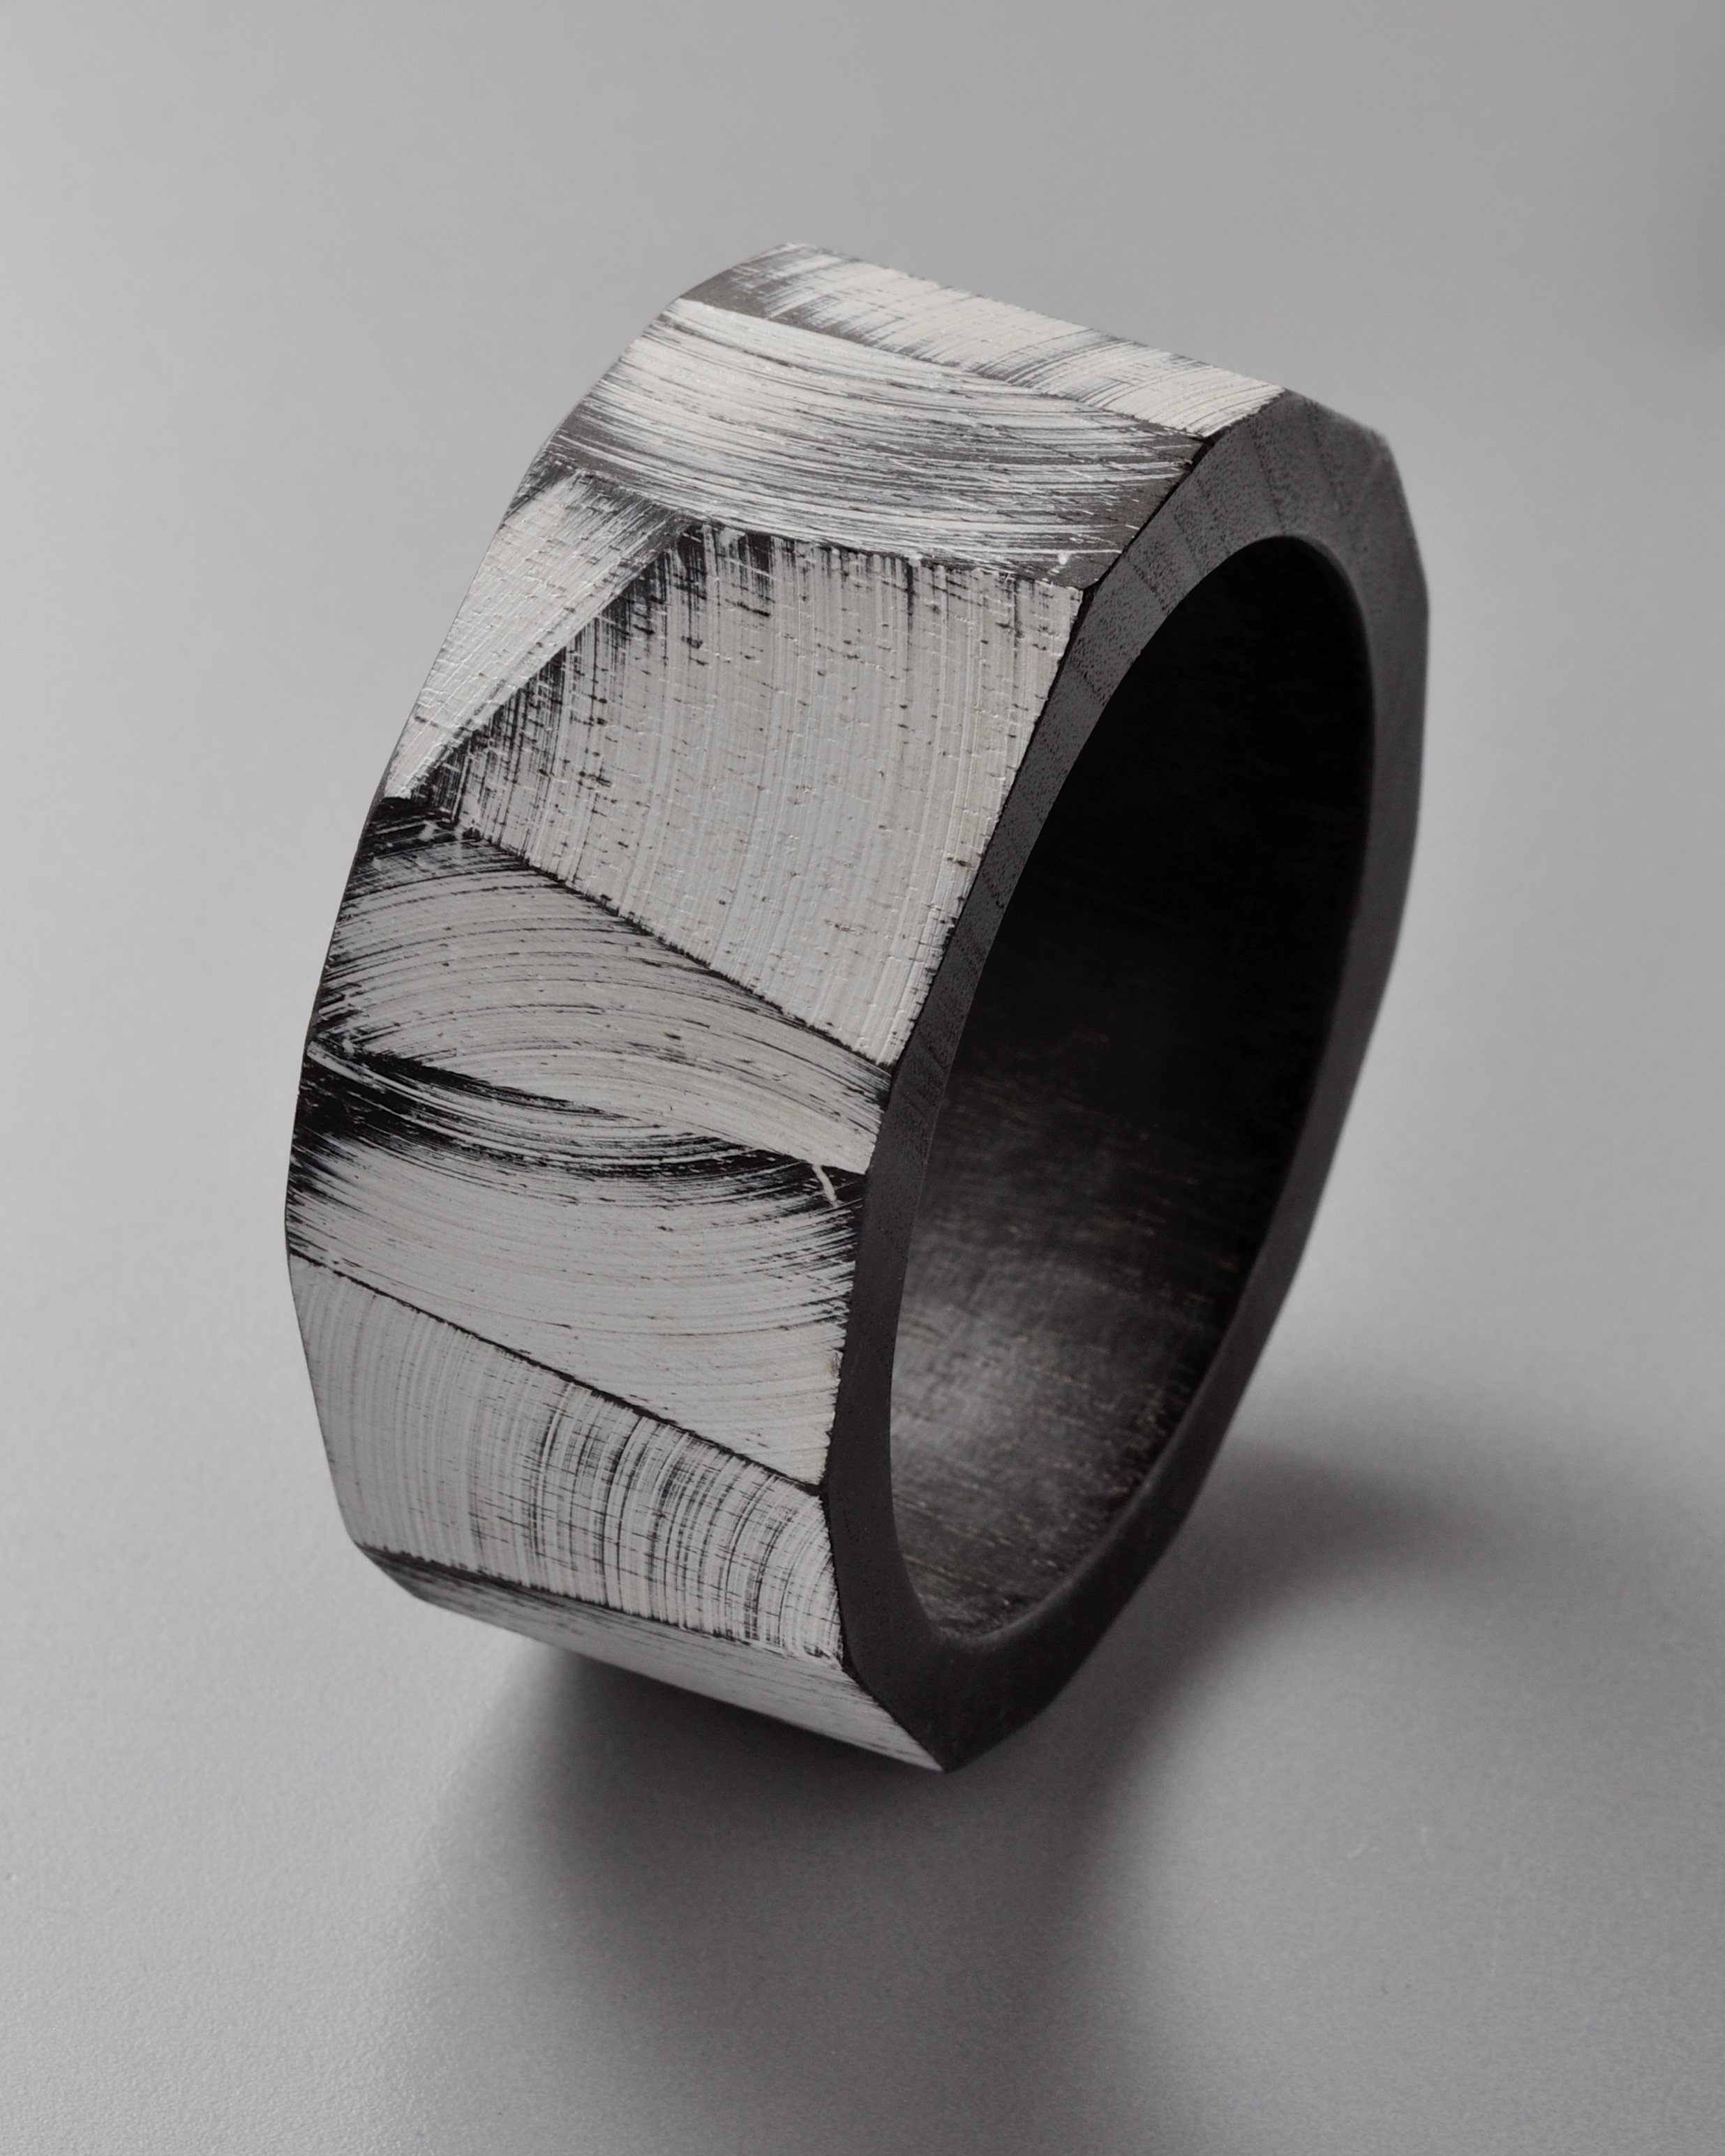 Julia Turner, Bracelet, Wood, paint.